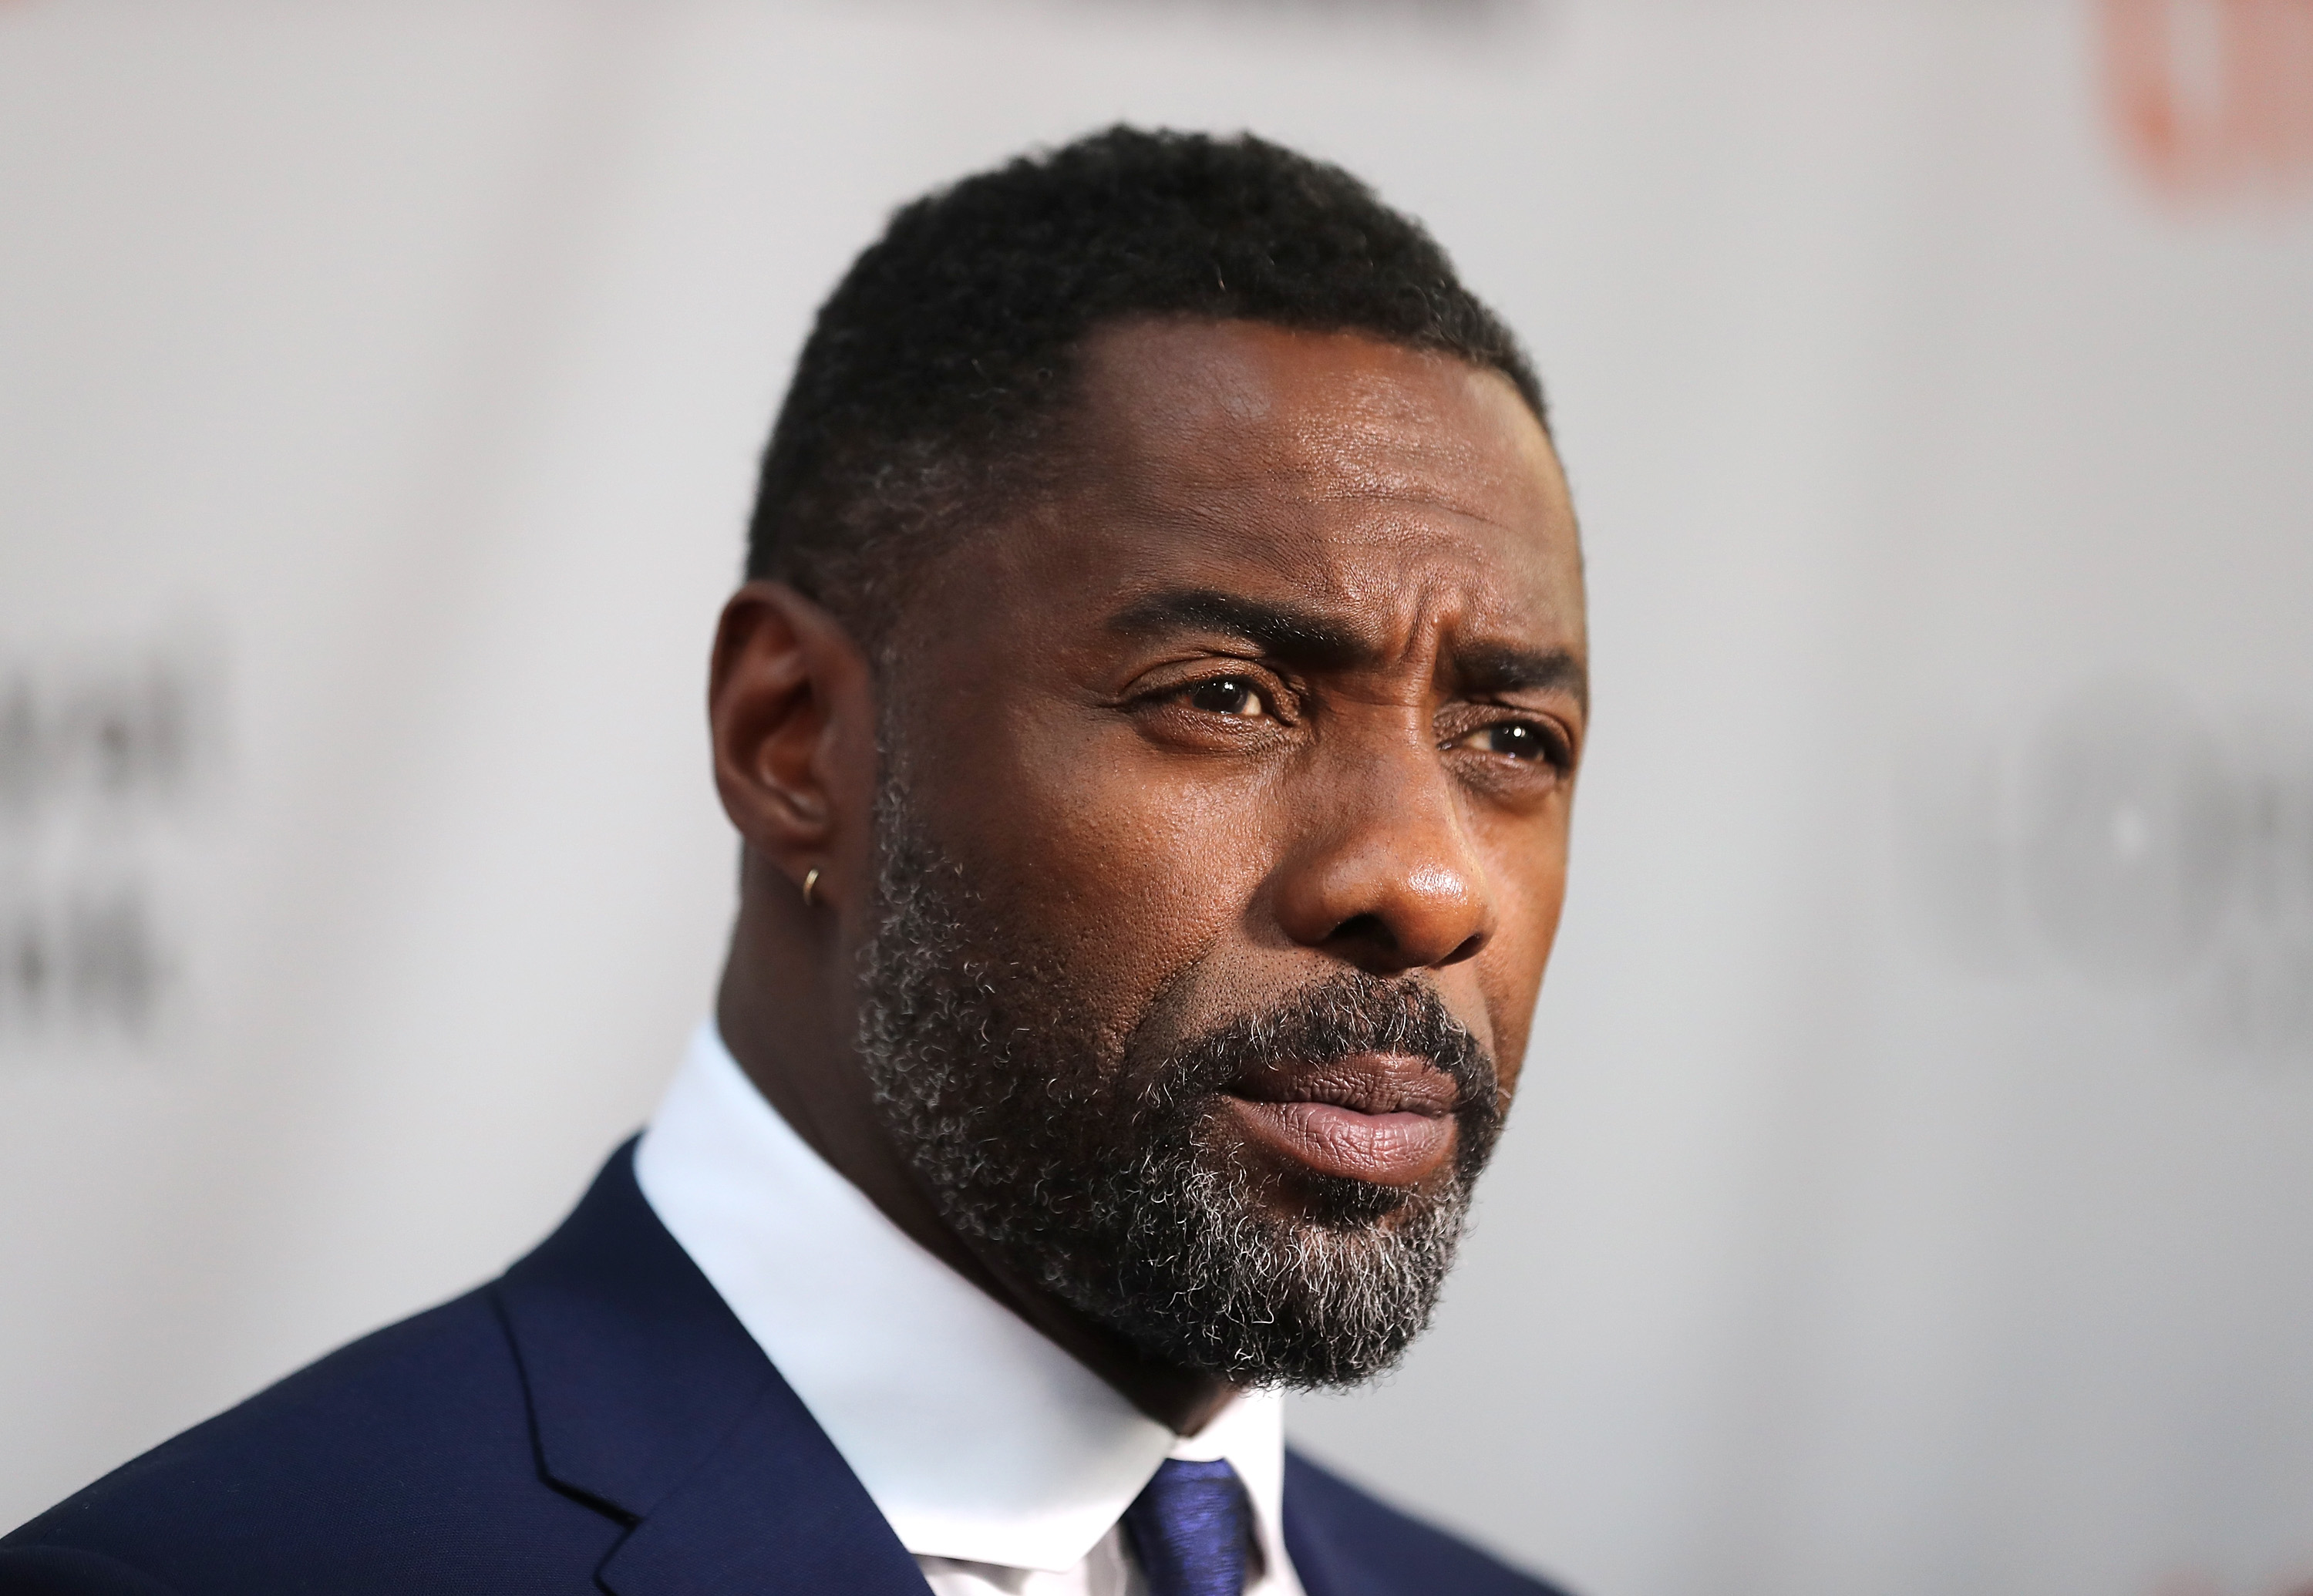 Actor Idris Elba speaks to the media at the premiere of  The Mountain Between Us  during the 2017 Toronto International Film Festival at Roy Thomson Hall on September 10, 2017 in Toronto, Canada.